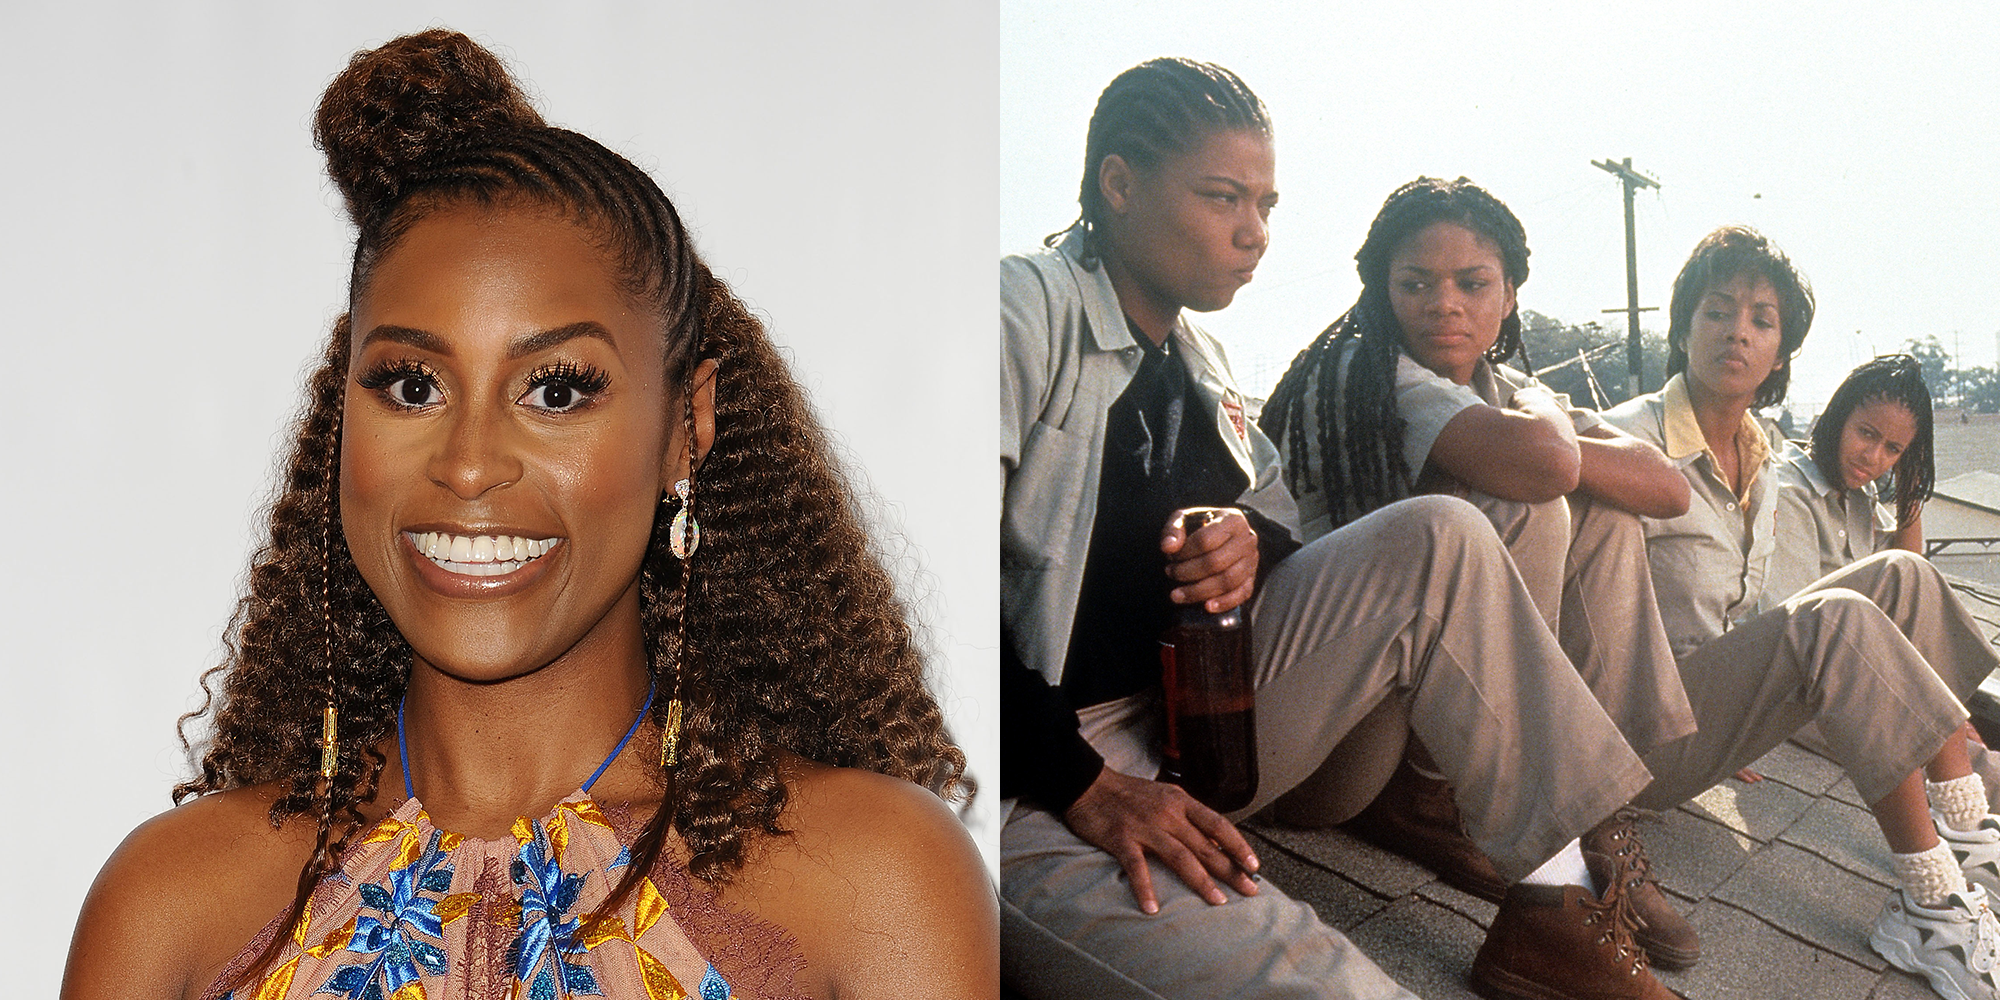 Issa Rae Is Giving Us a Remake of the '90s Classic Set It Off